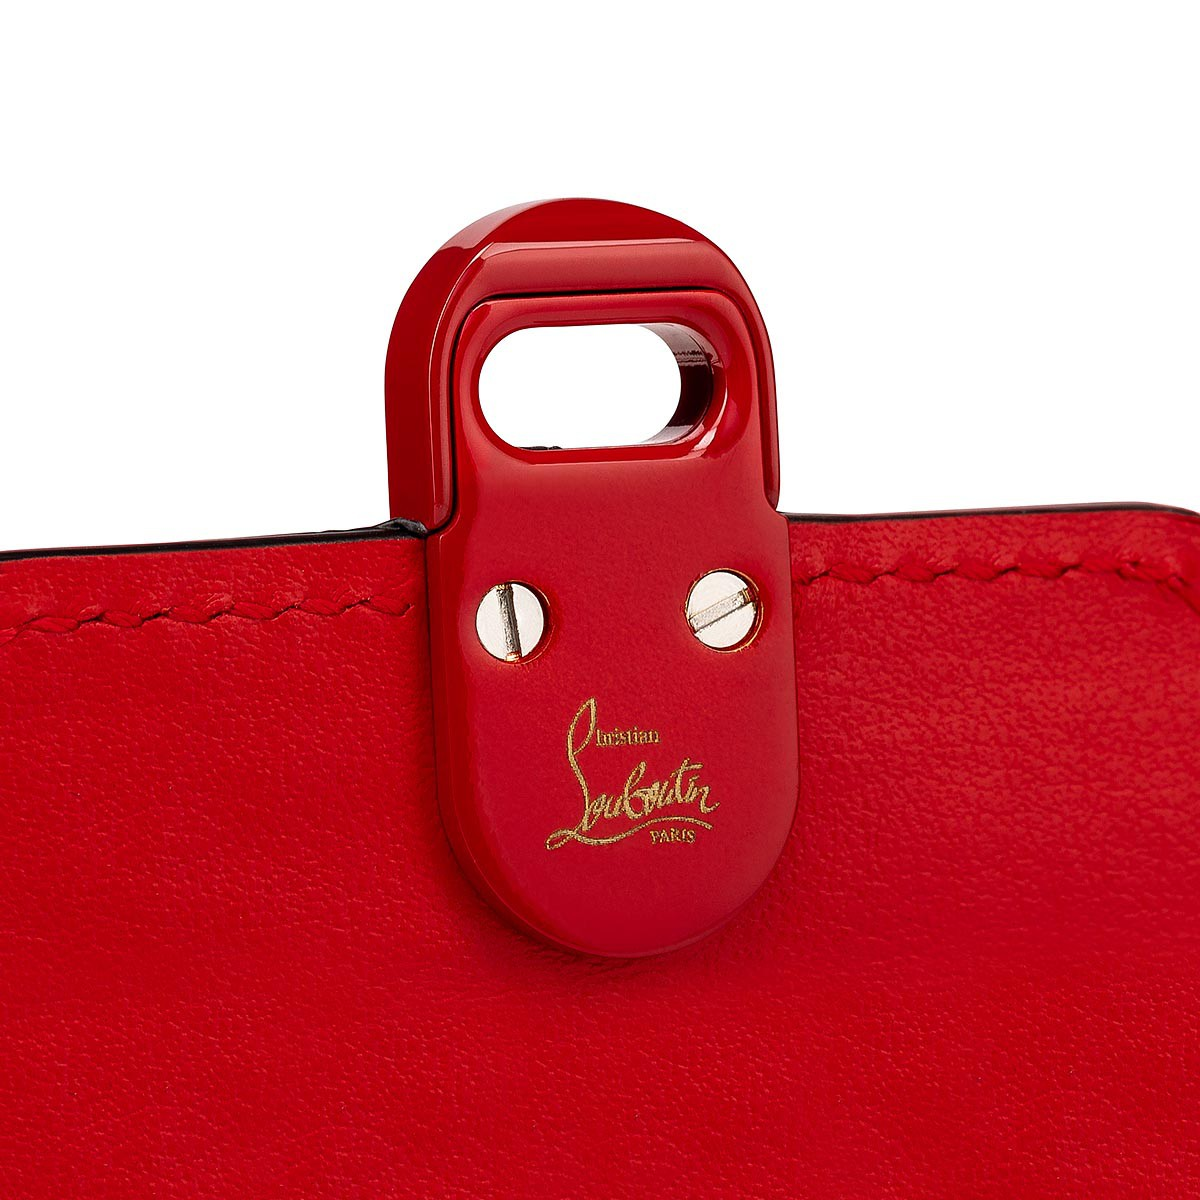 Small Leather Goods - Elisa Airpods Pro Case - Christian Louboutin